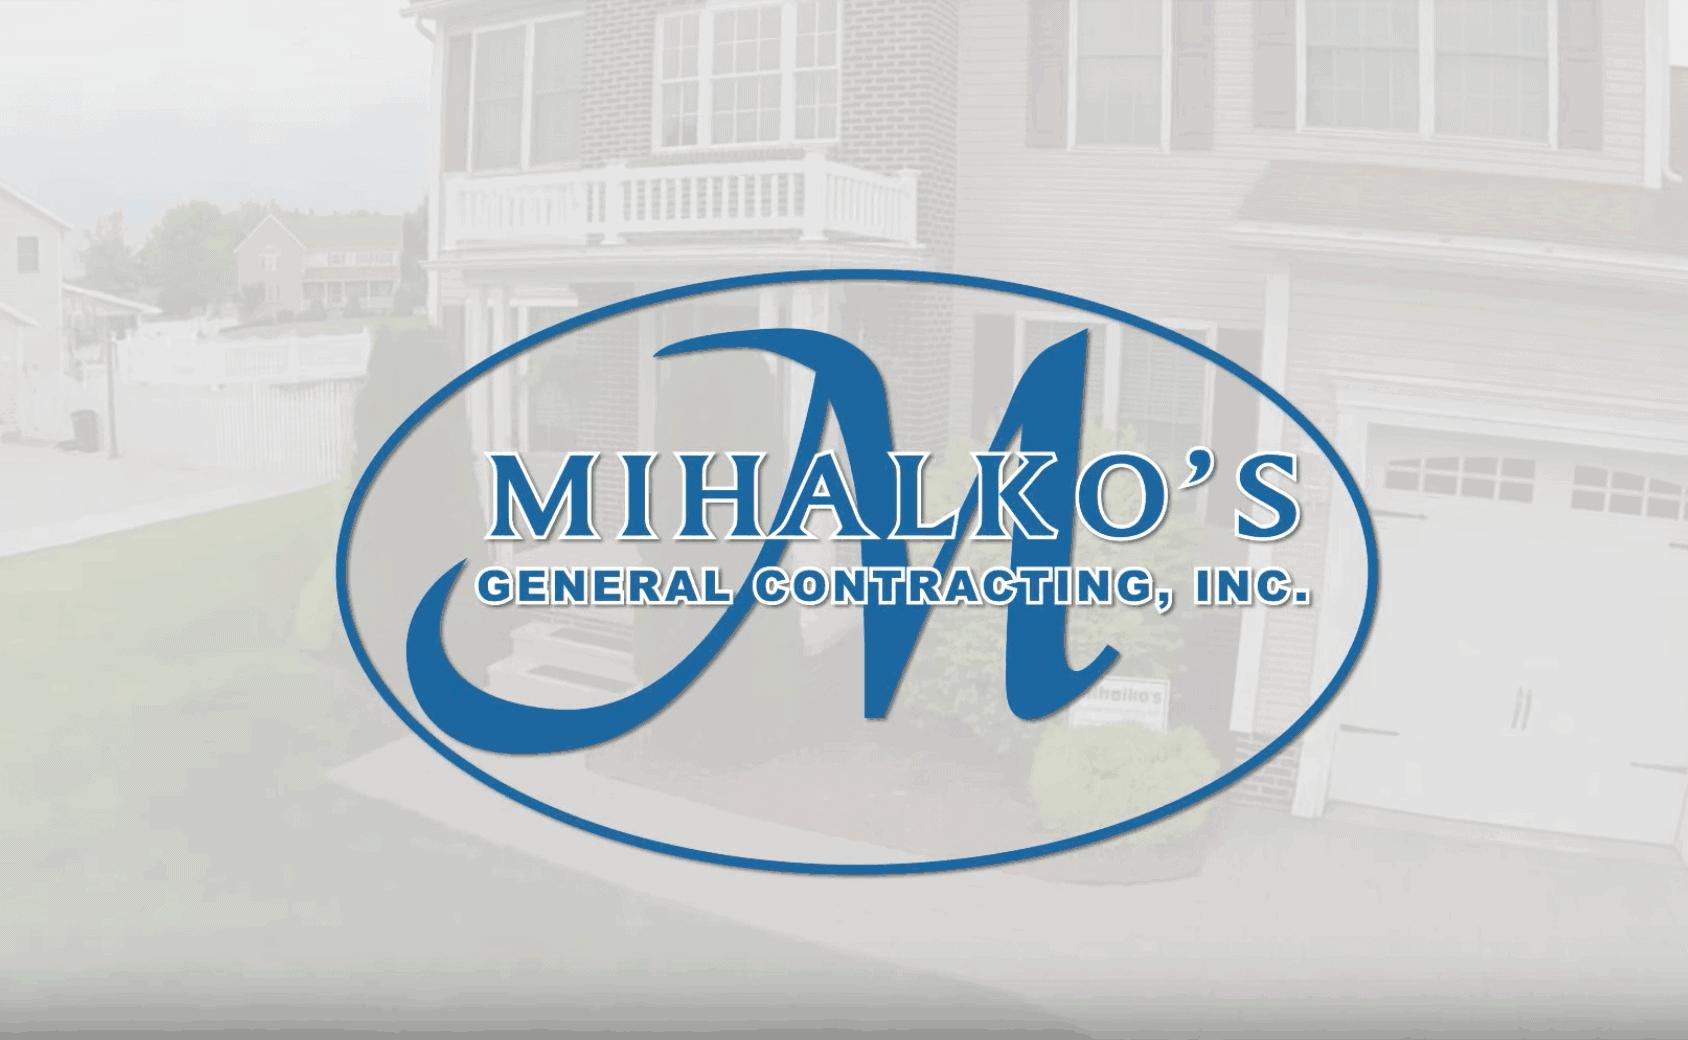 Still from Mihalko's General Contracting exterior remodeling and financing commercial